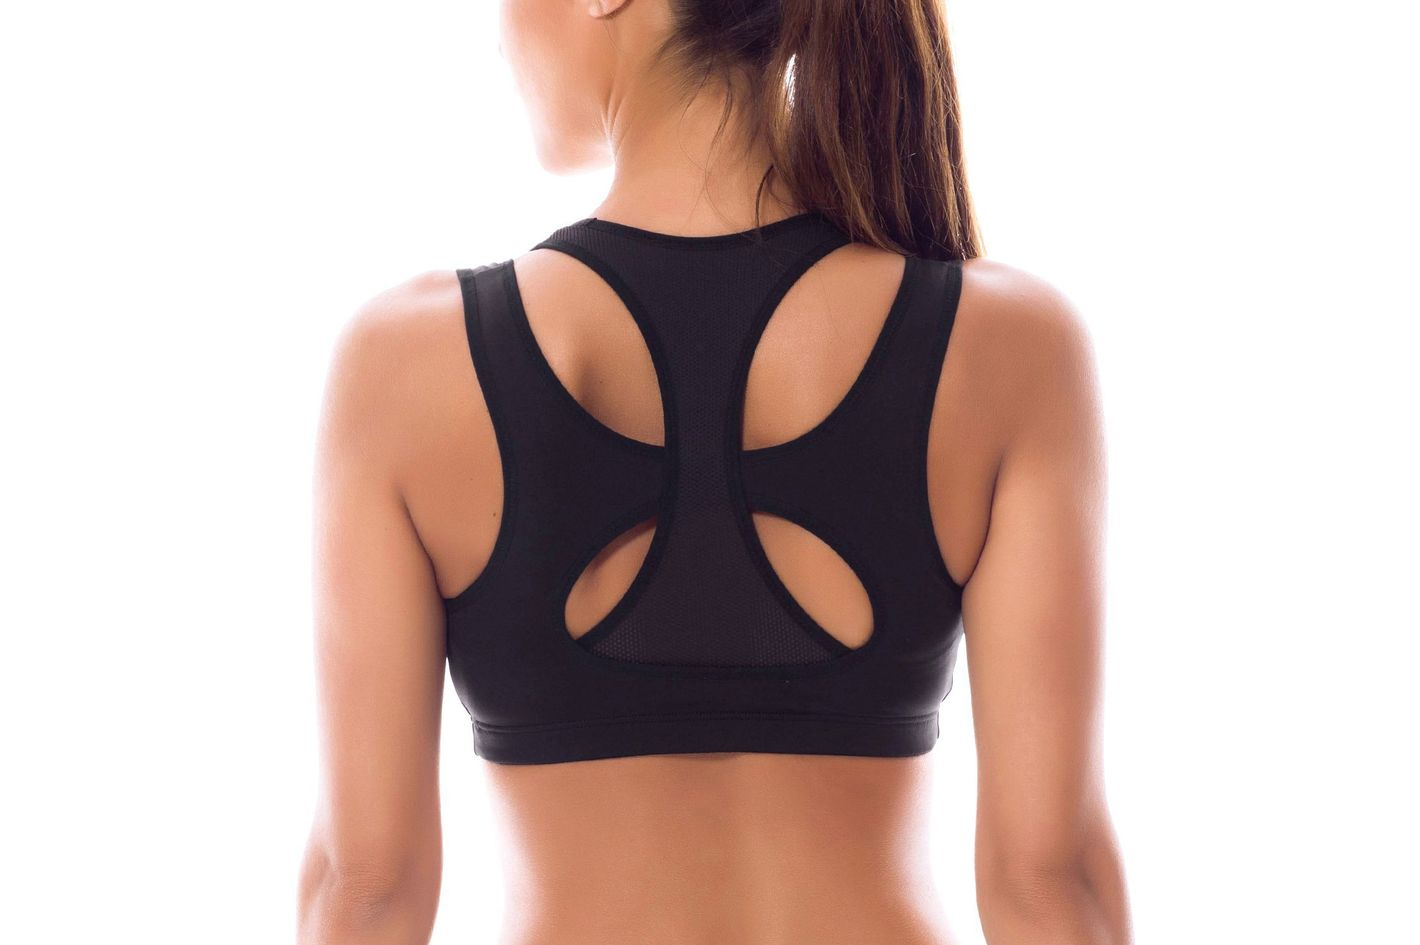 d4ac47953f5b8 SYROKAN Women s High Impact Support Wirefree Workout Racerback Sports Bra  Top